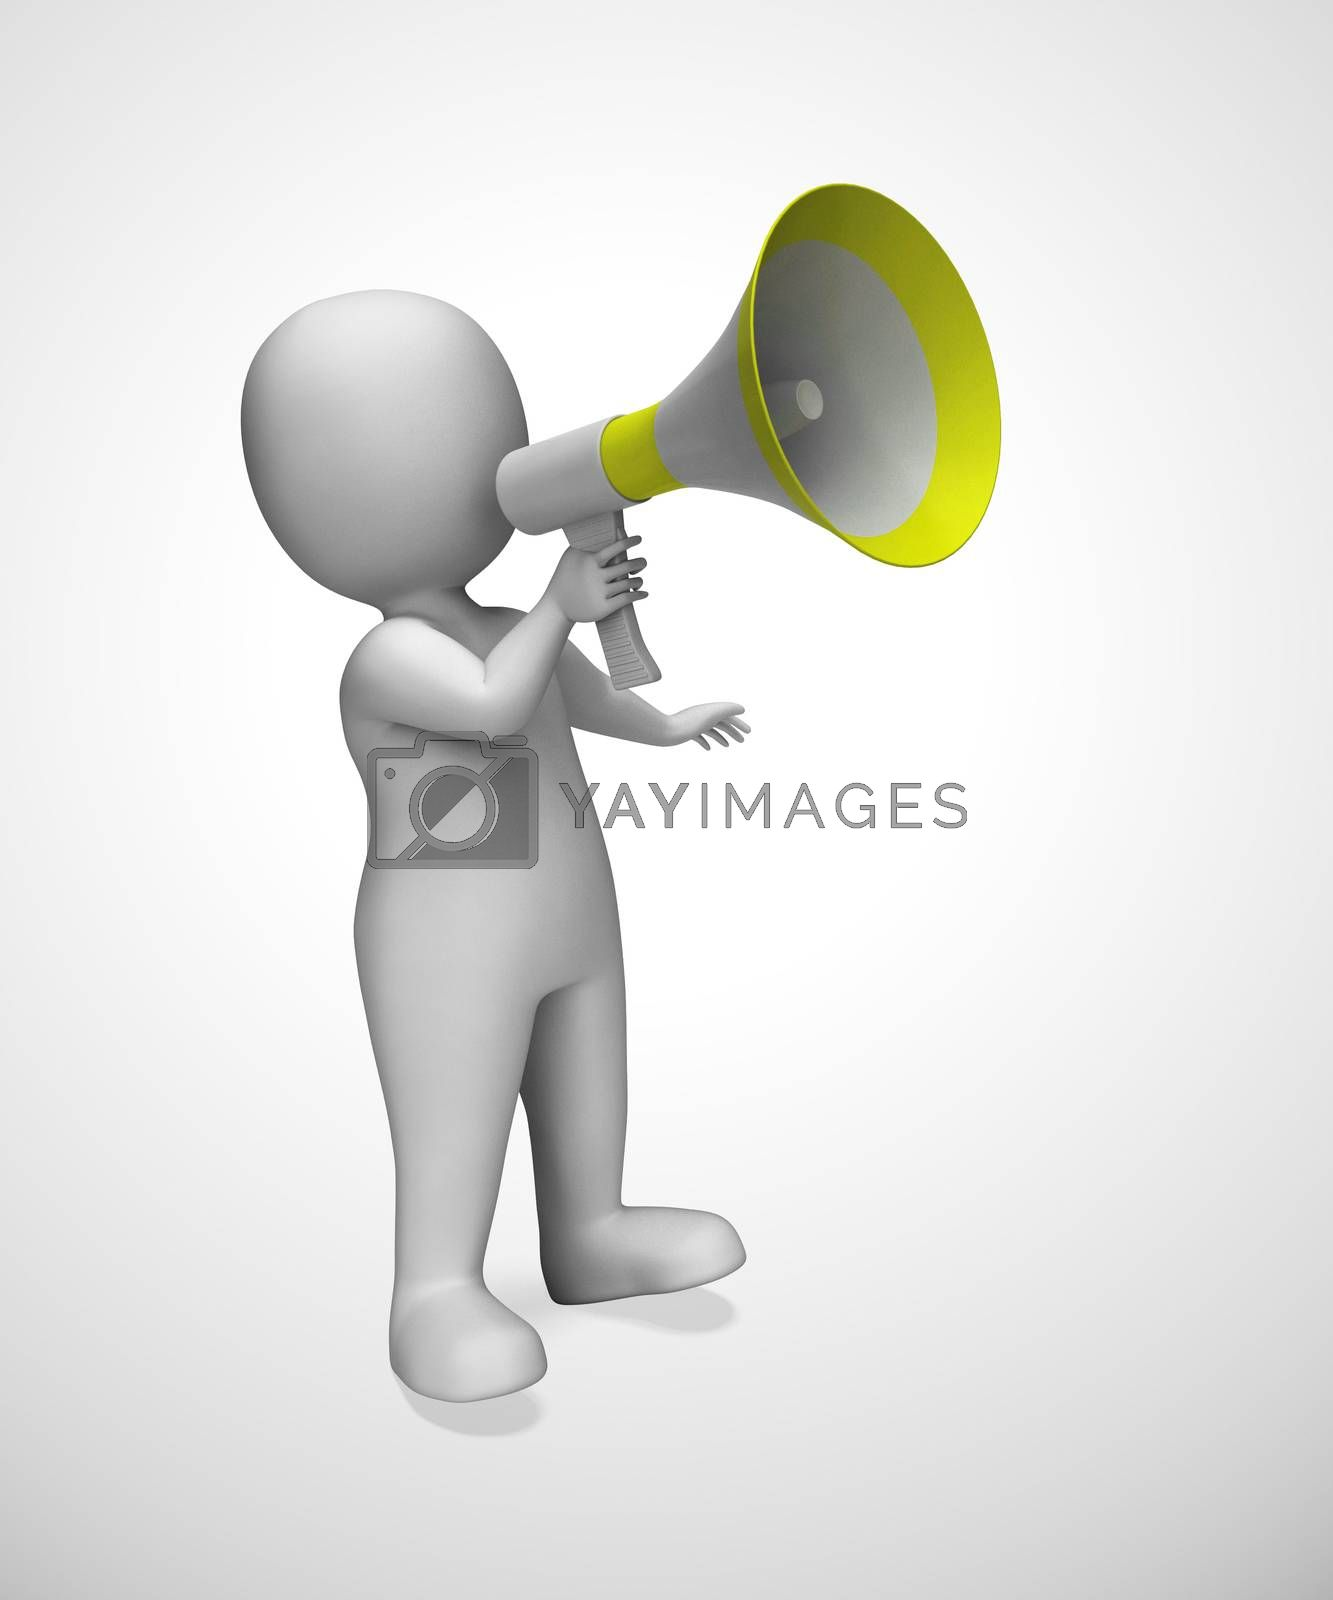 Megaphone used to give opinion announcement or make a speech. Loud hailer proclaiming complaint and grievance - 3d illustration